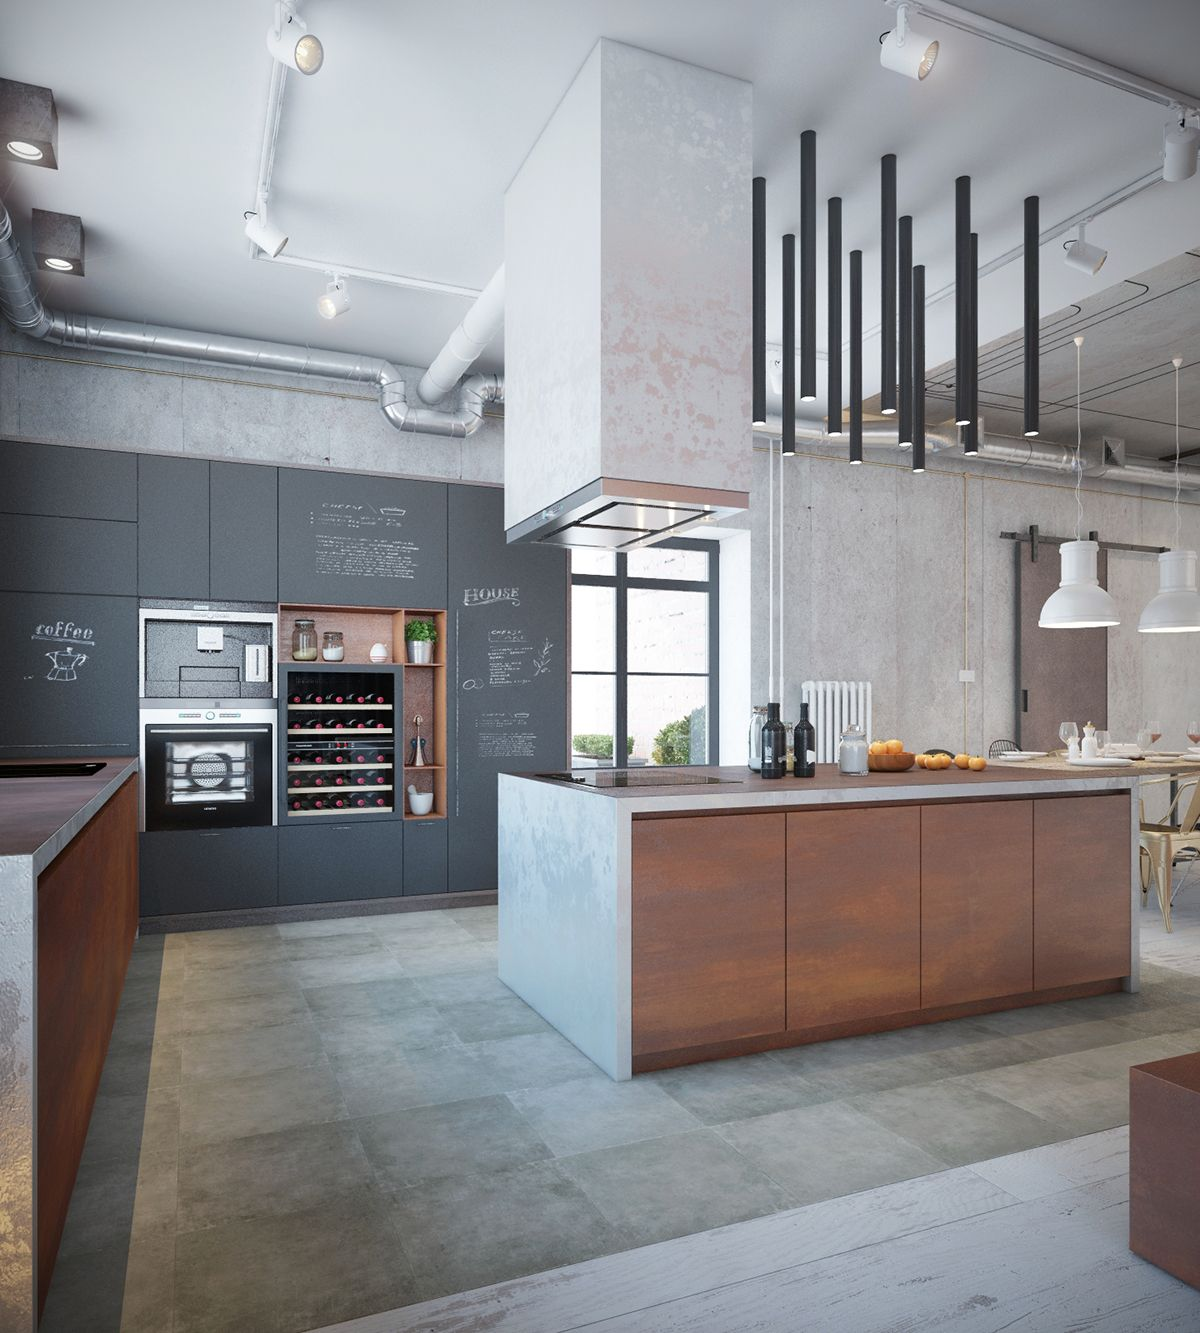 INDUSTRIAL HOUSE on Behance | kitchens | Pinterest